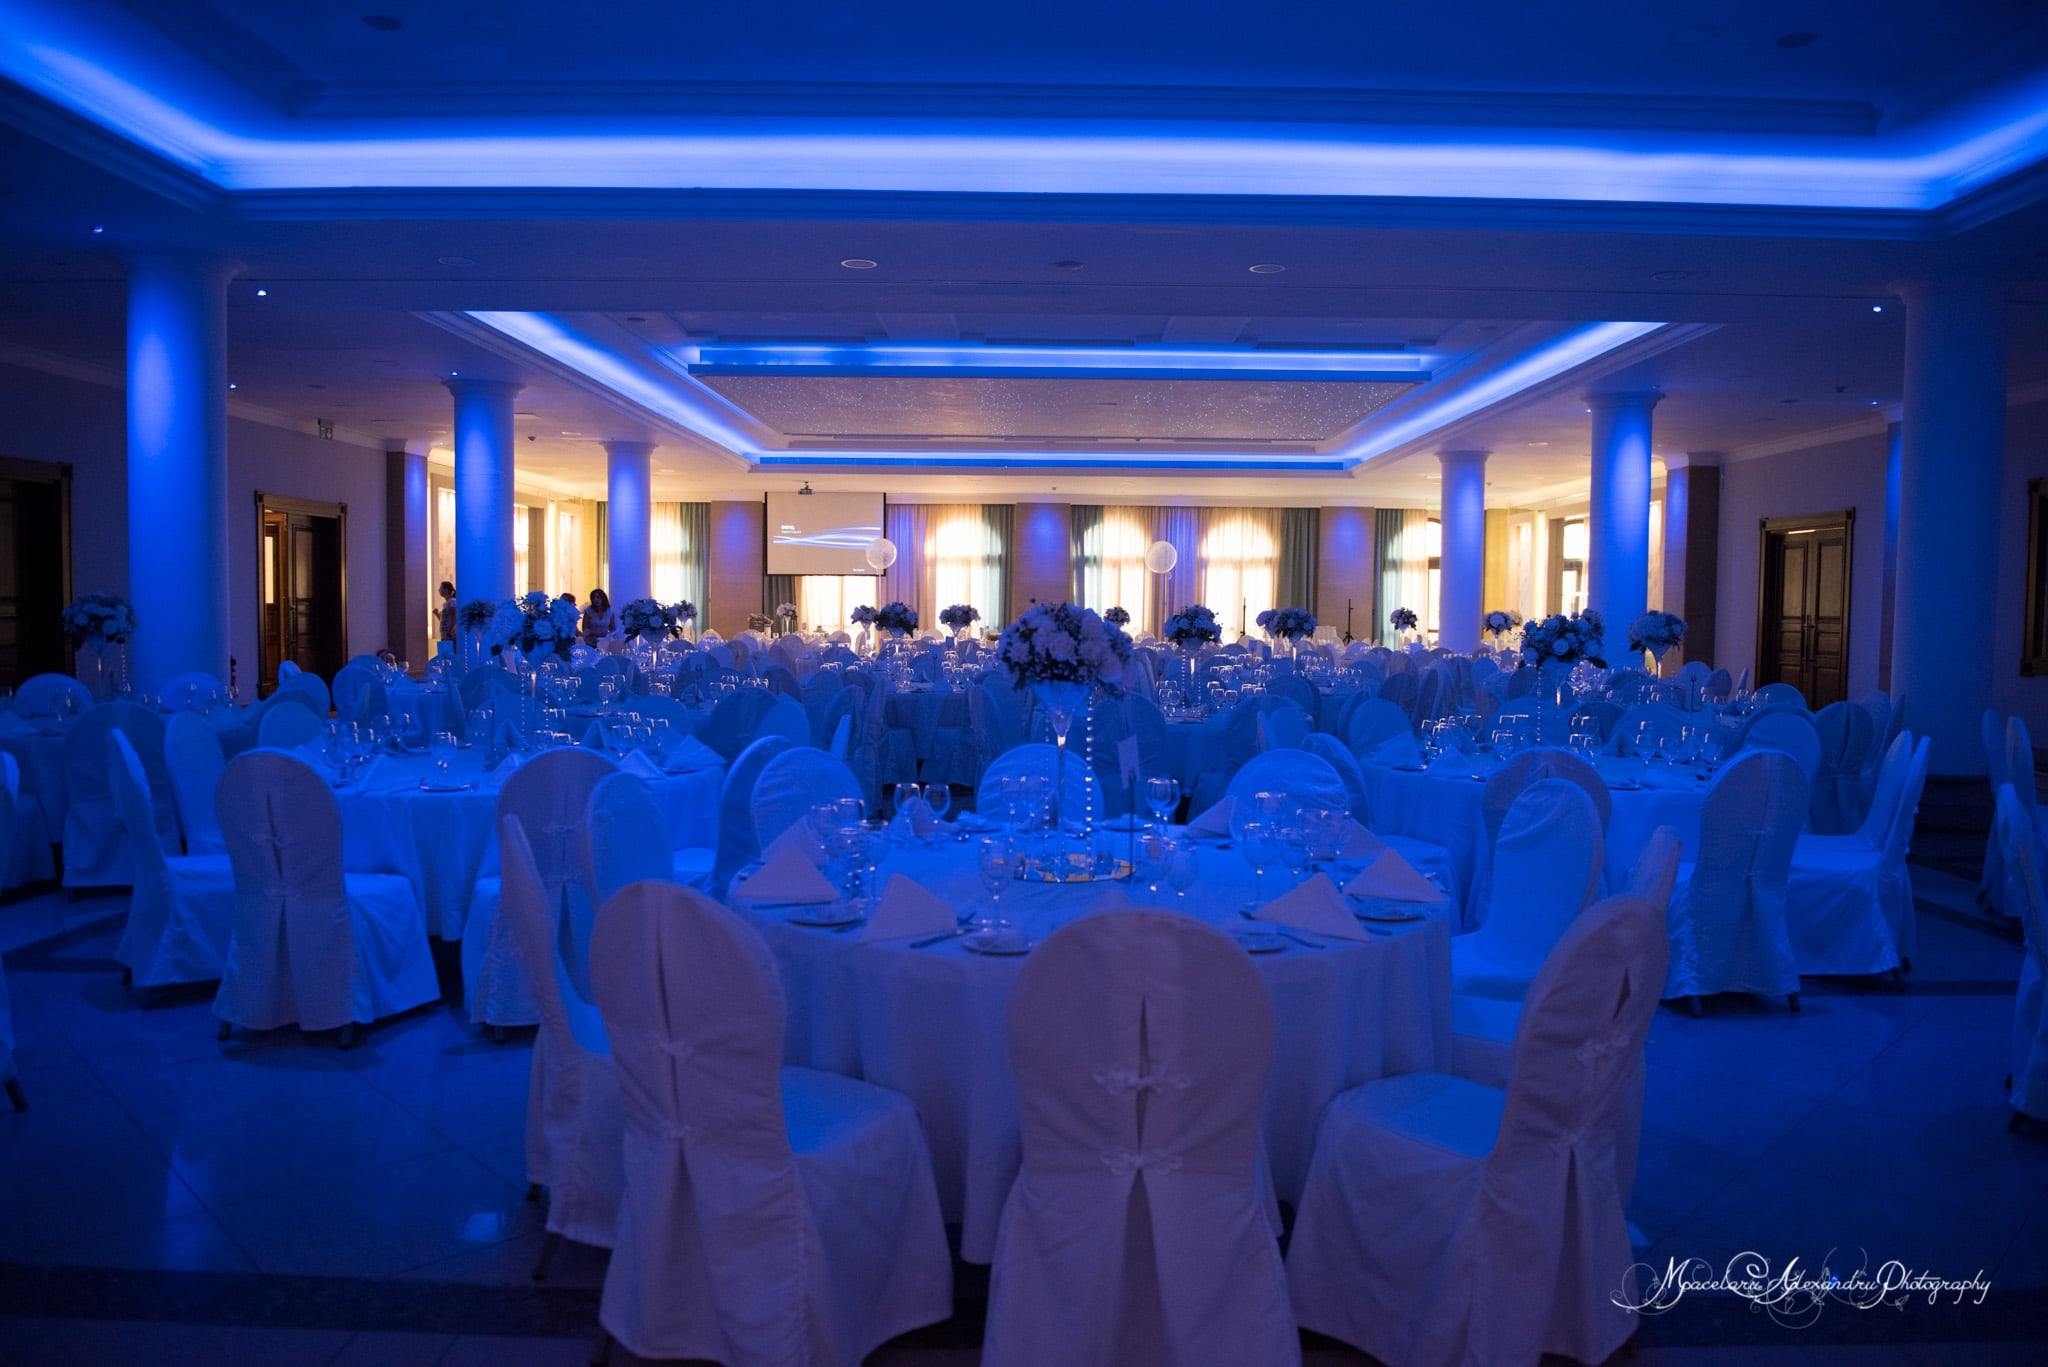 Wedding photography in Paphos - The restaurant at aliathon village